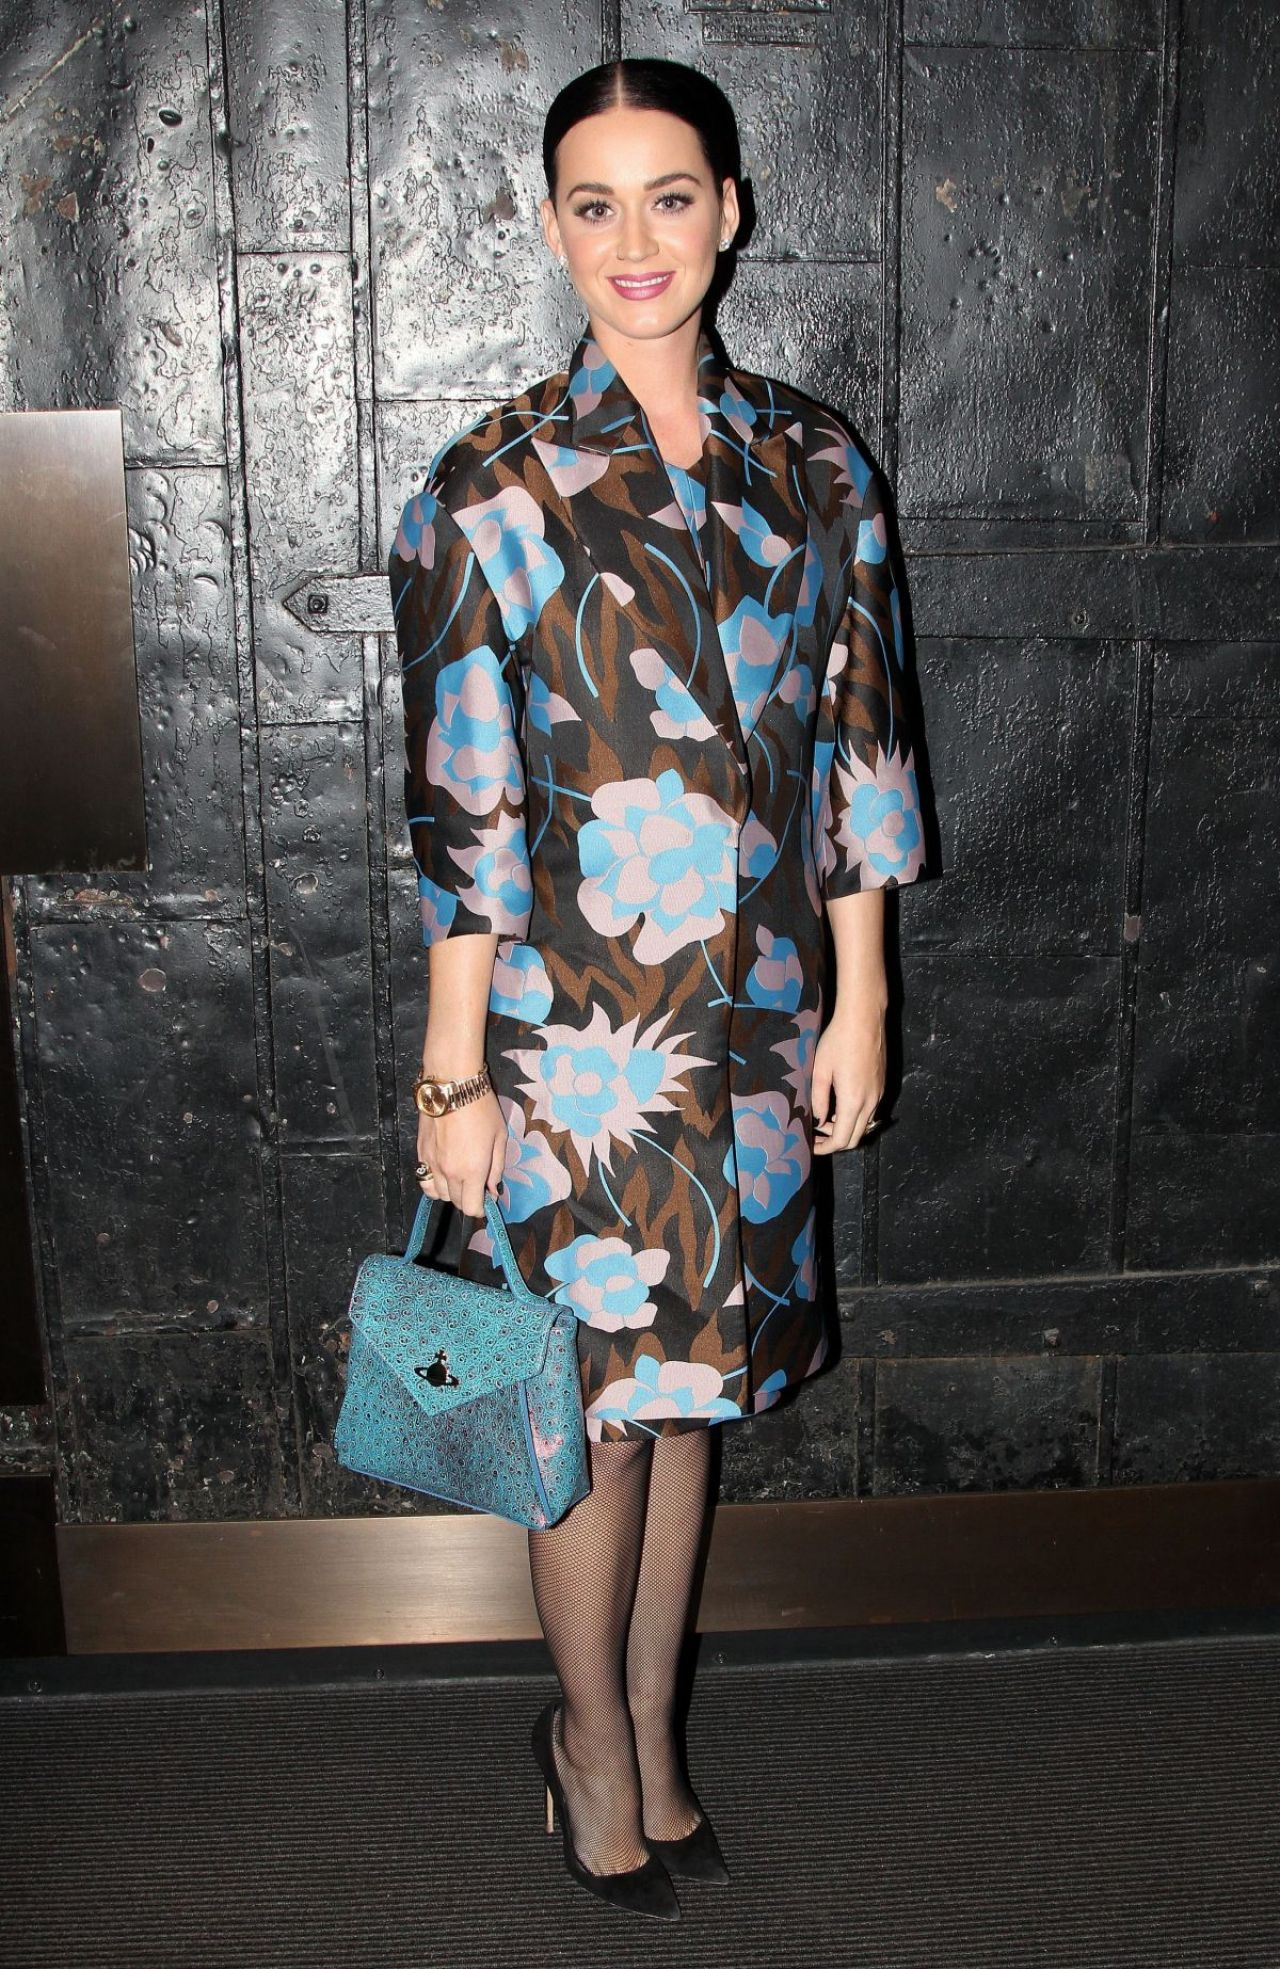 Katy Perry 2015 Celebrity Photos Style At The Stephen Sondheim Theatre In New York City Dec 2014